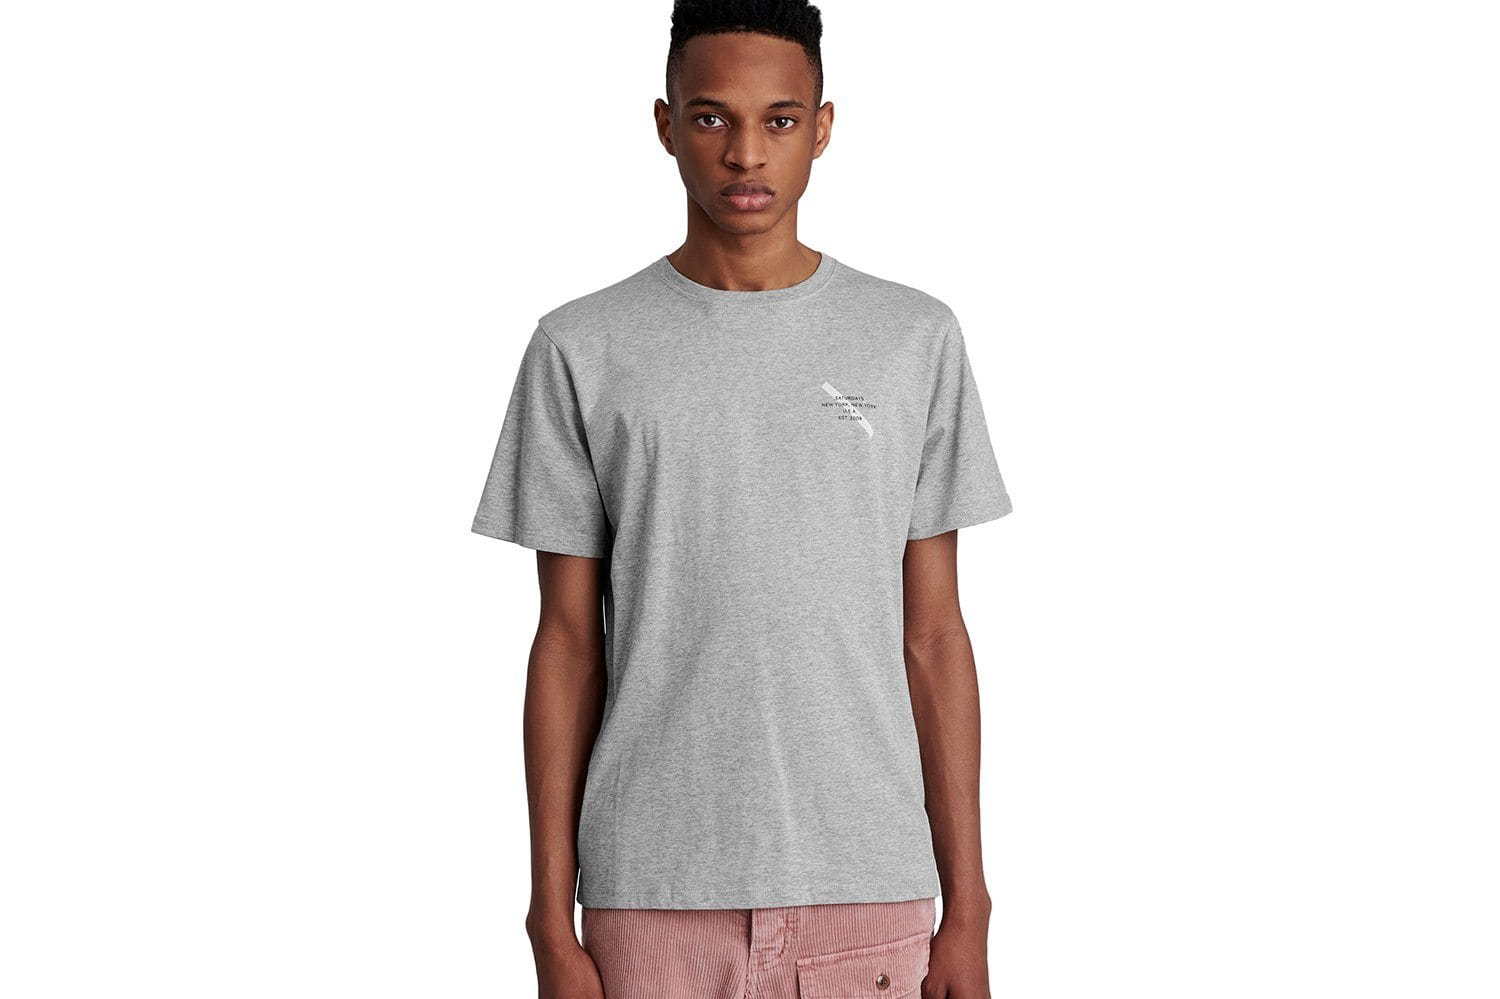 GOTHAM SLASH CHEST S/S TEE - M41929PT08 MENS SOFTGOODS SATURDAYS NYC